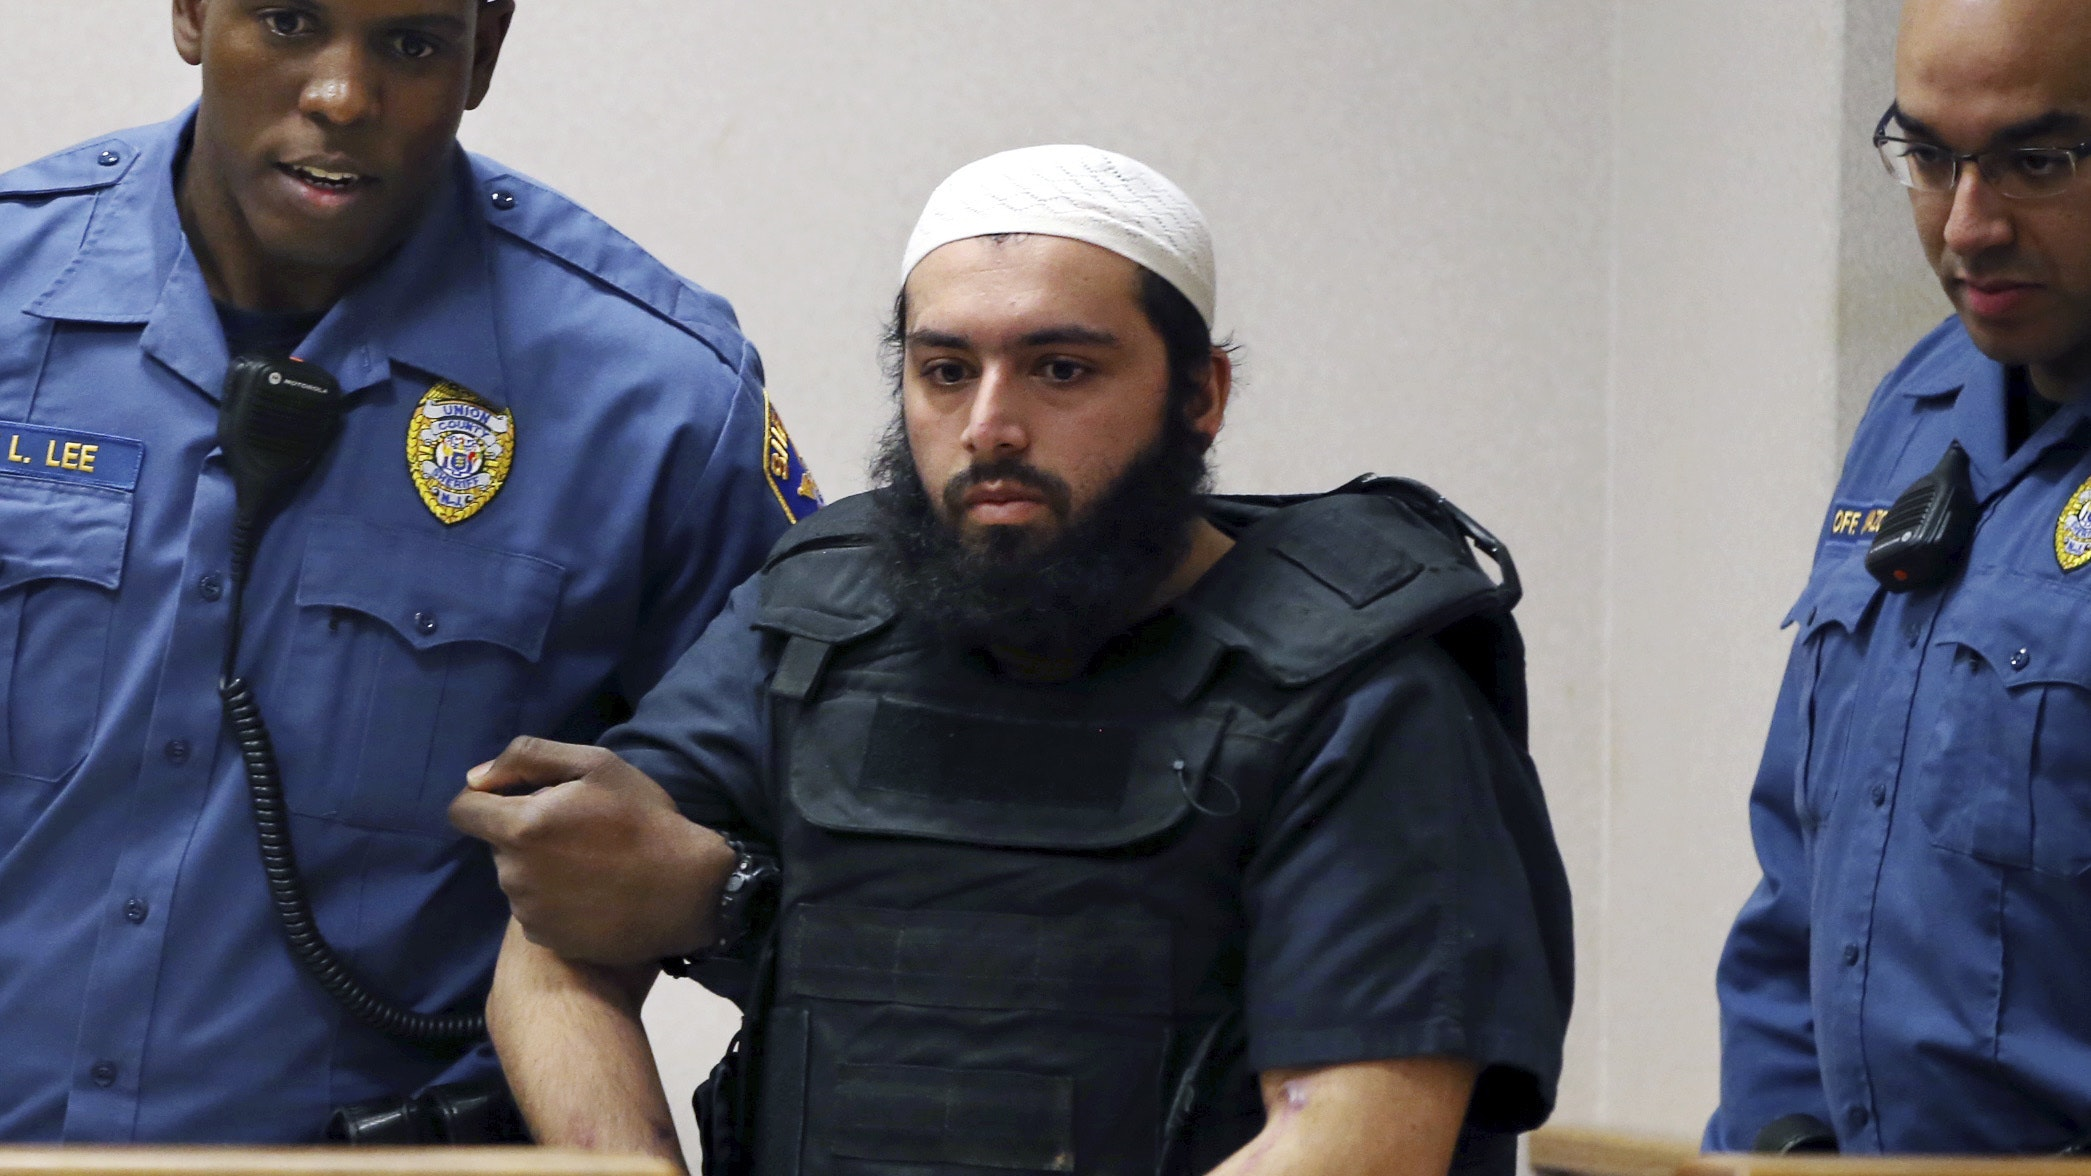 New York pressure cooker bomber jailed for life